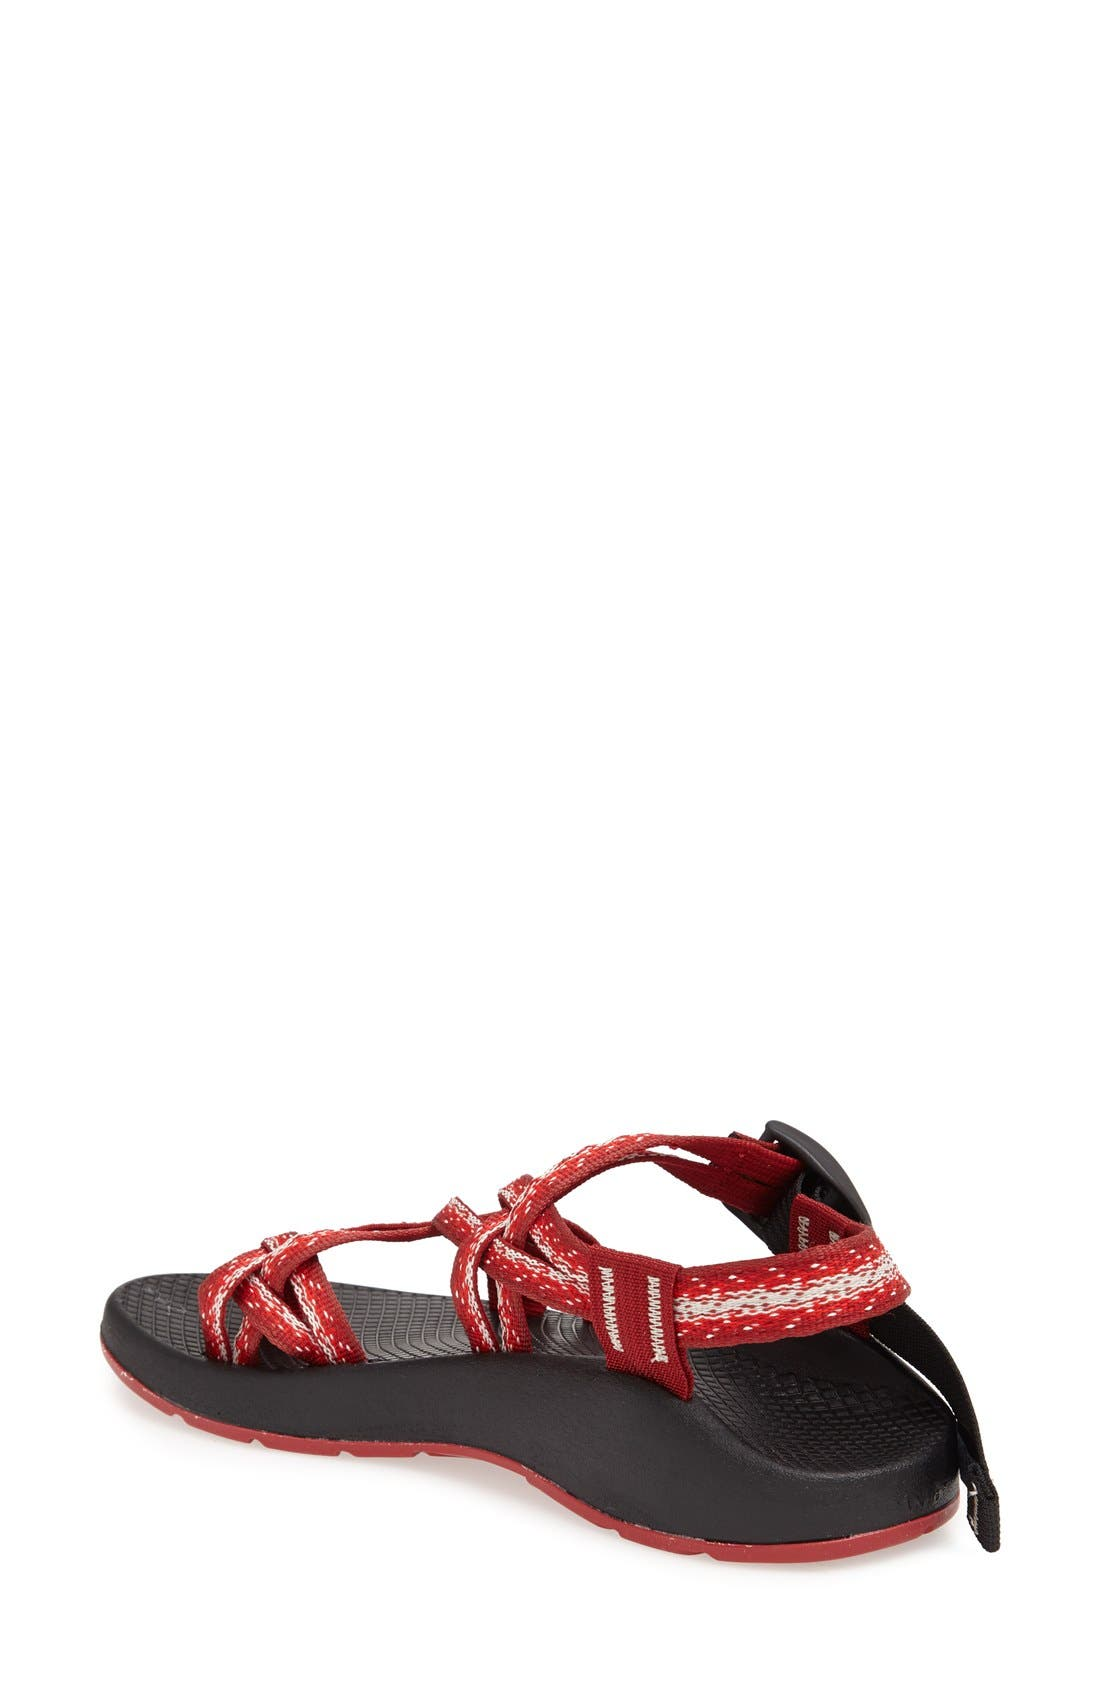 Alternate Image 2  - Chaco 'ZX2 Yampa' Sandal (Women)